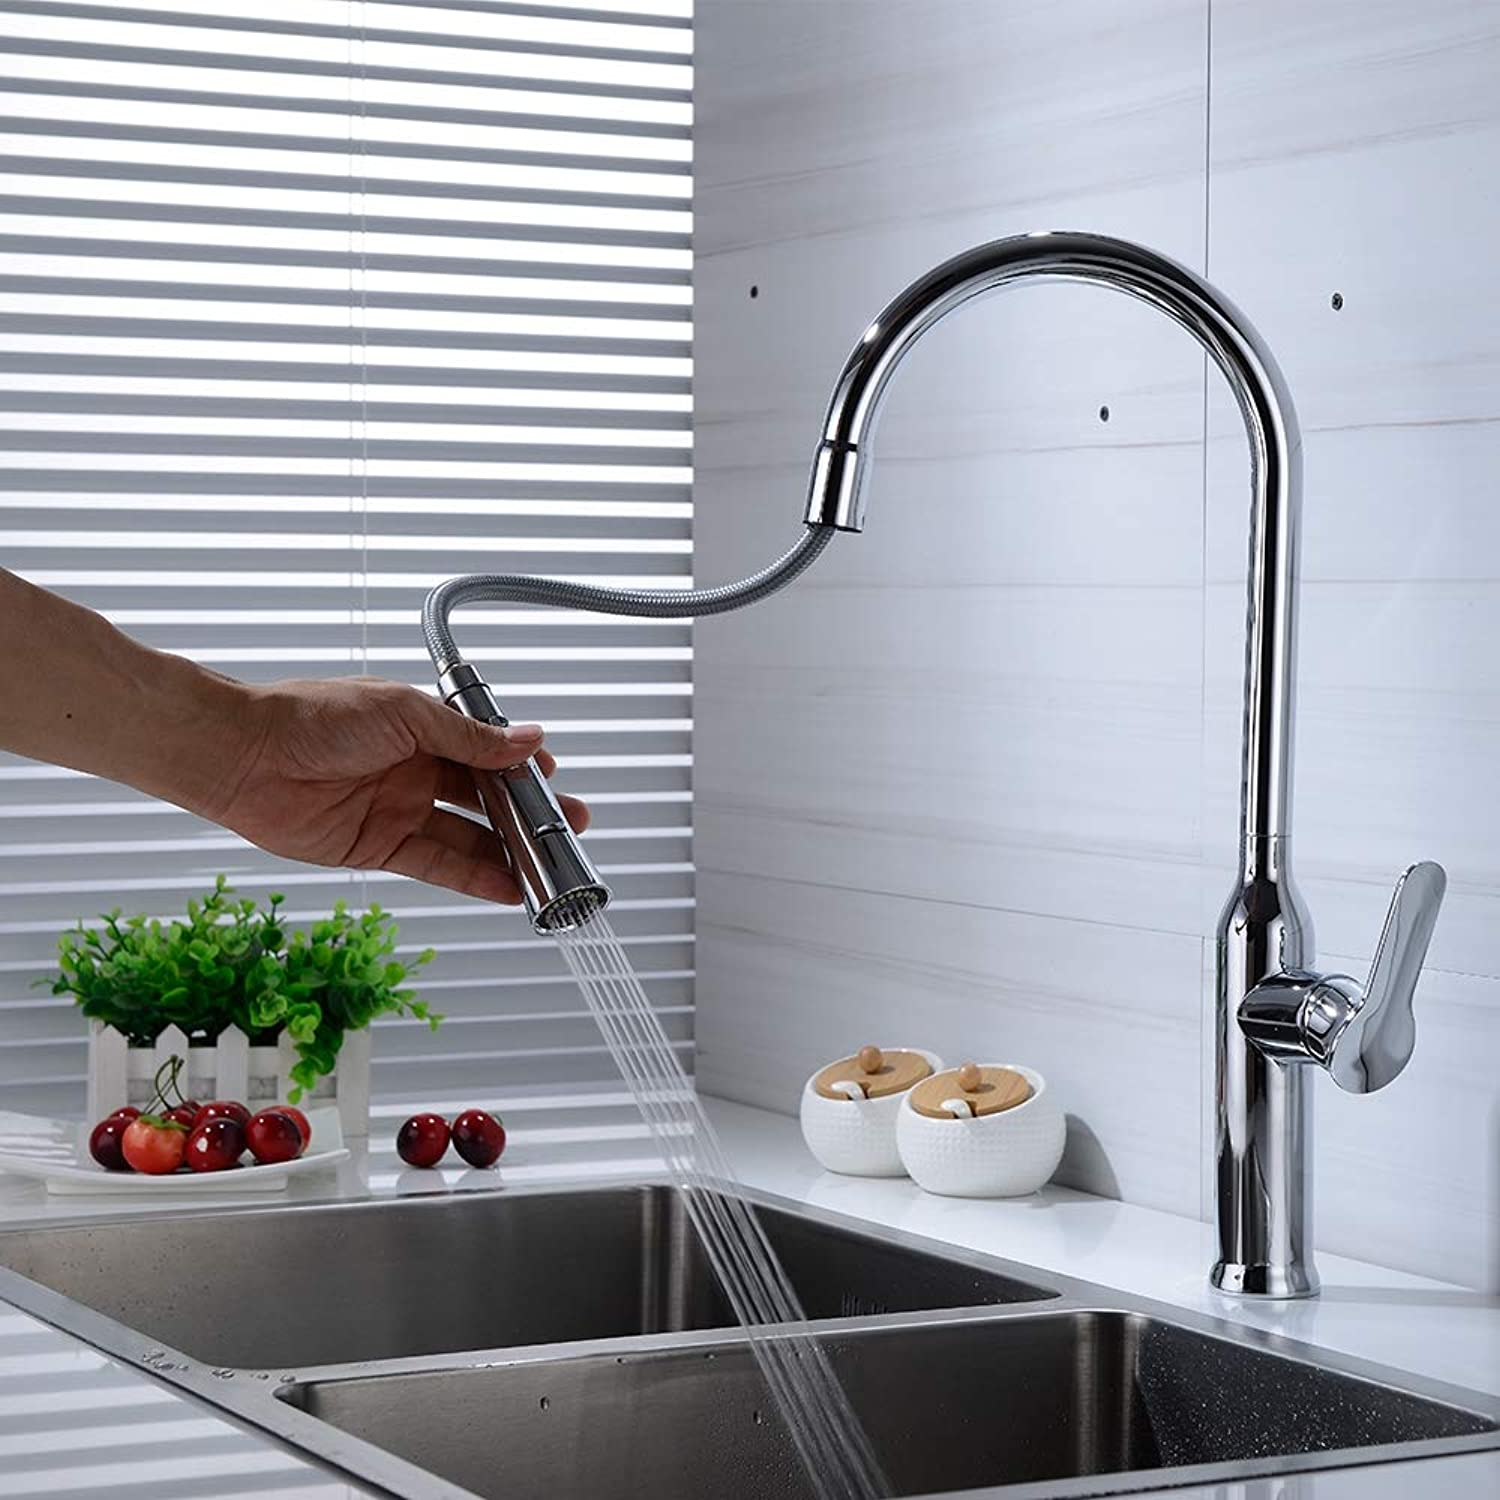 Mixing Faucet Pulls The Kitchen Sink, Hot and Cold Dual Function Bubbler Switch Sink, Full Copper Chrome